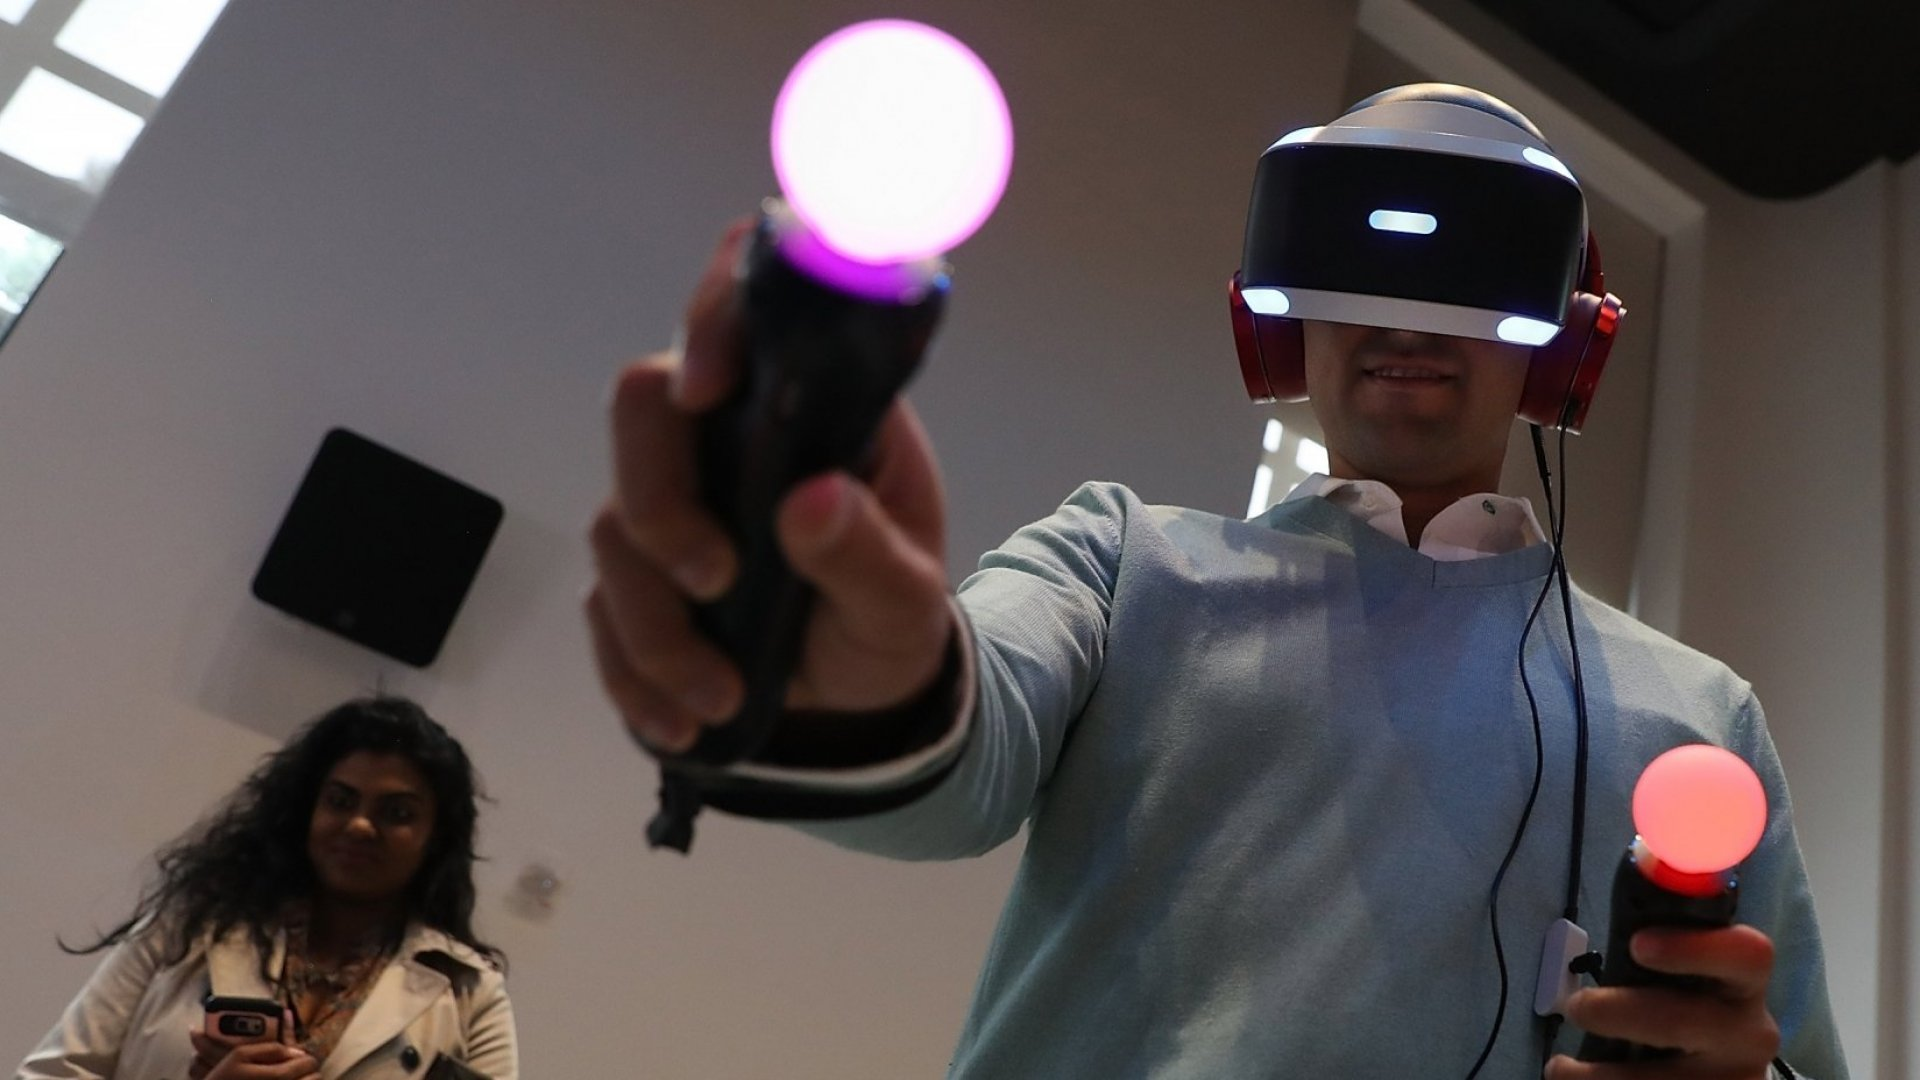 A customer tries the new PlayStation VR ($399) at Sony Square NYC on October 13, 2016. Sony launched its PlayStation VR that links to PlayStation 4 to give gamers a virtual reality gaming experience.